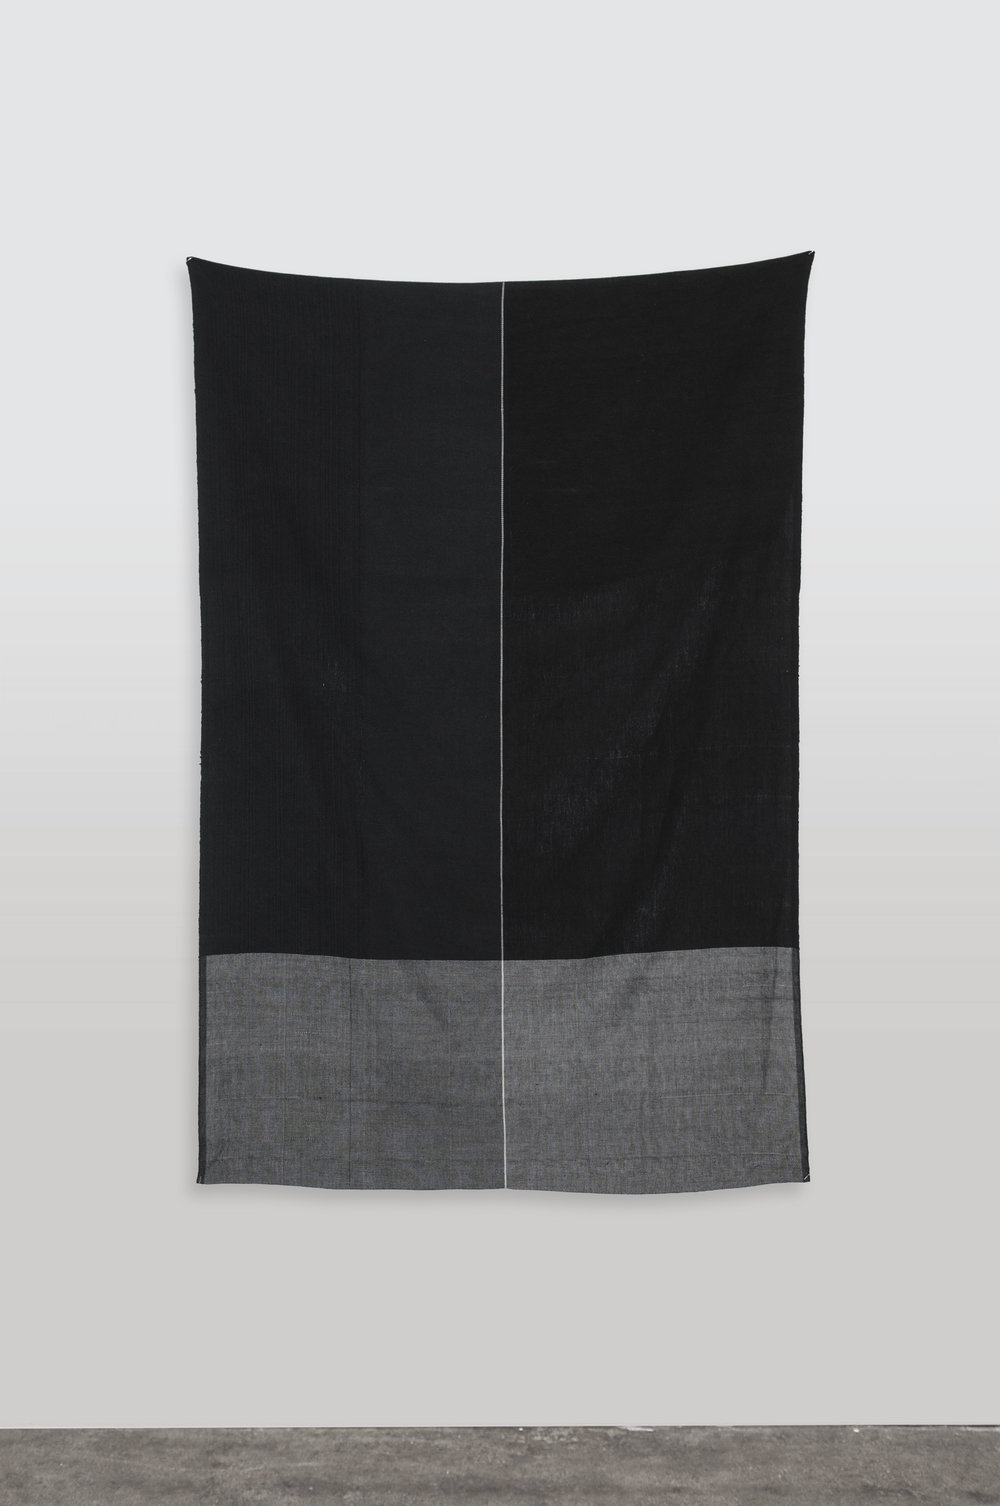 3.2 Untitled    2018 Woven Cotton and Linen